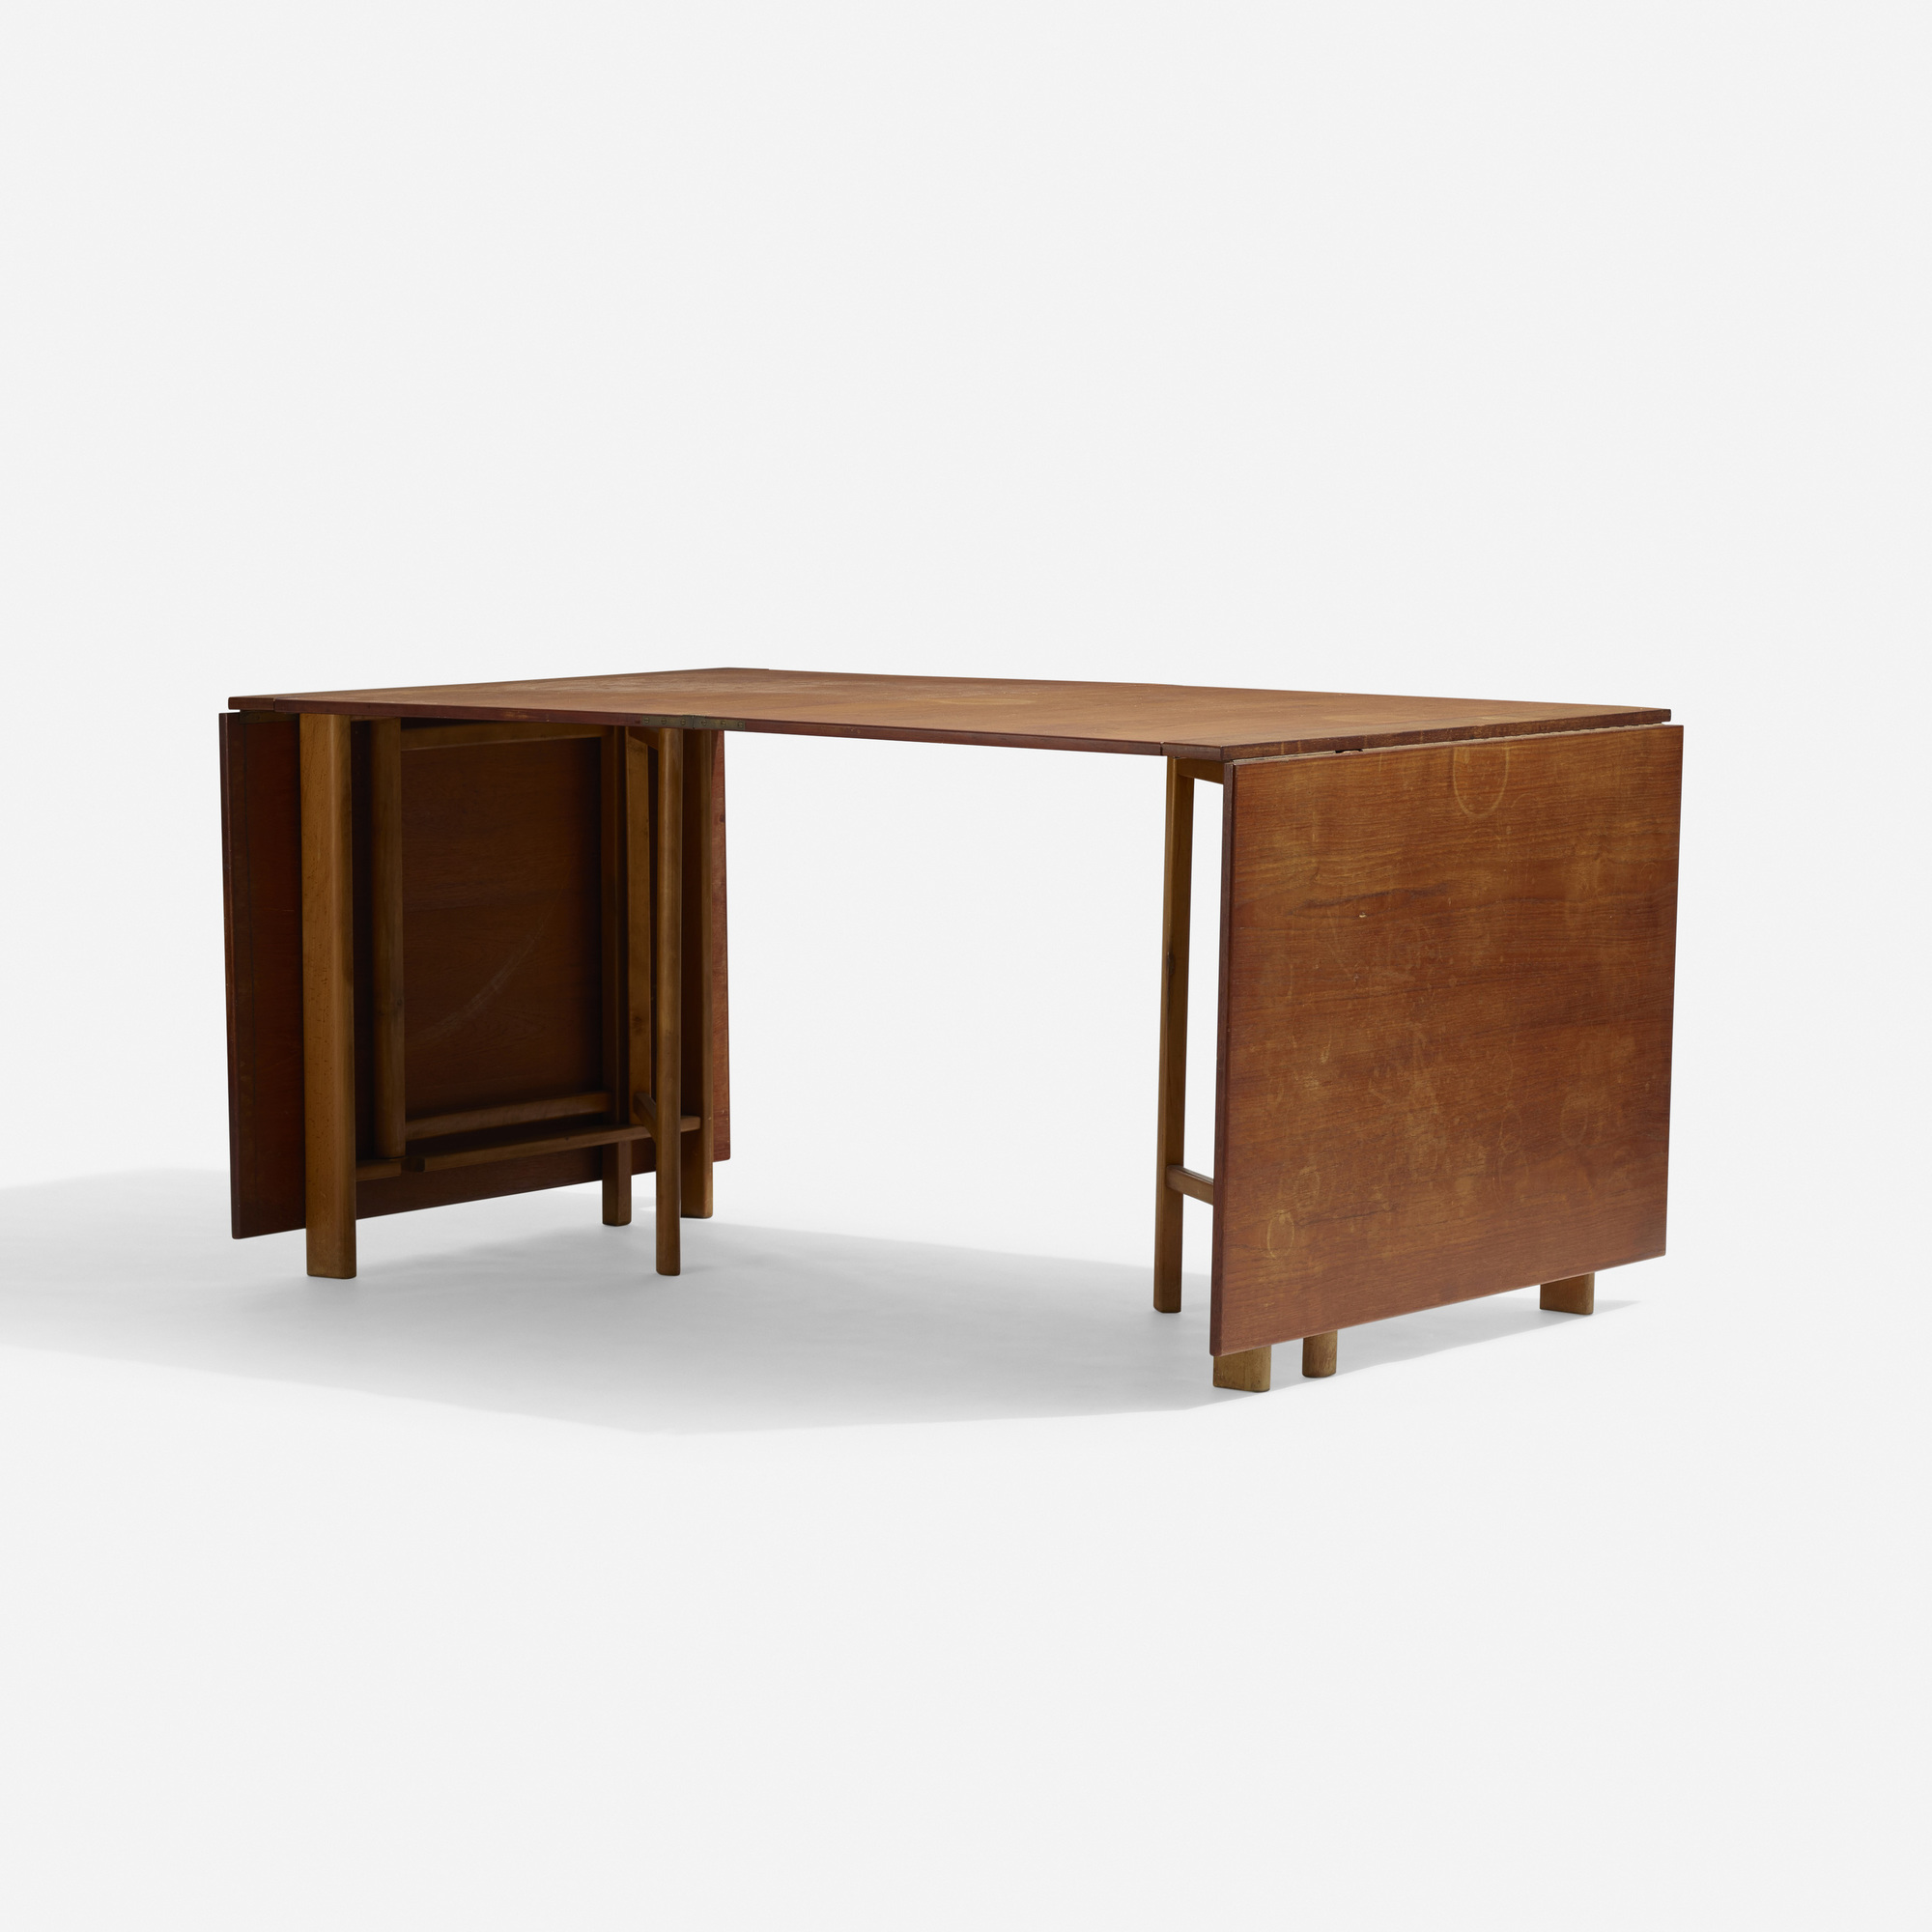 267: Bruno Mathsson / Maria folding table (4 of 5)